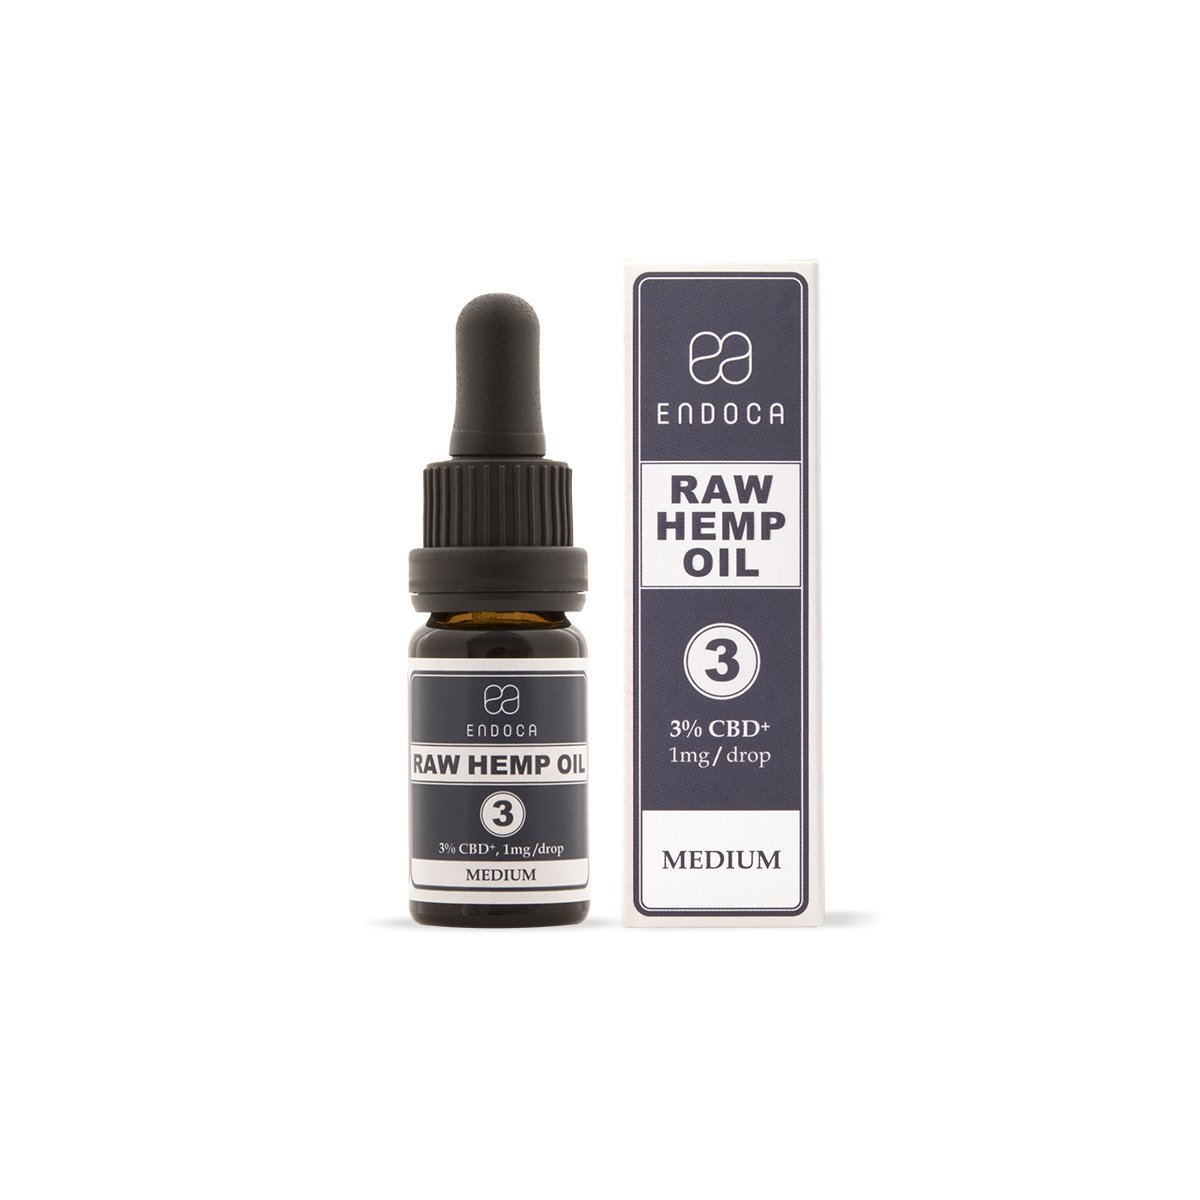 Raw Hemp Oil Drops - 300mg CBD + CBDa (3%) | Endoca | CBD oil | uWeed | Swiss CBD Shop | Buy Online Shop CBD Switzerland